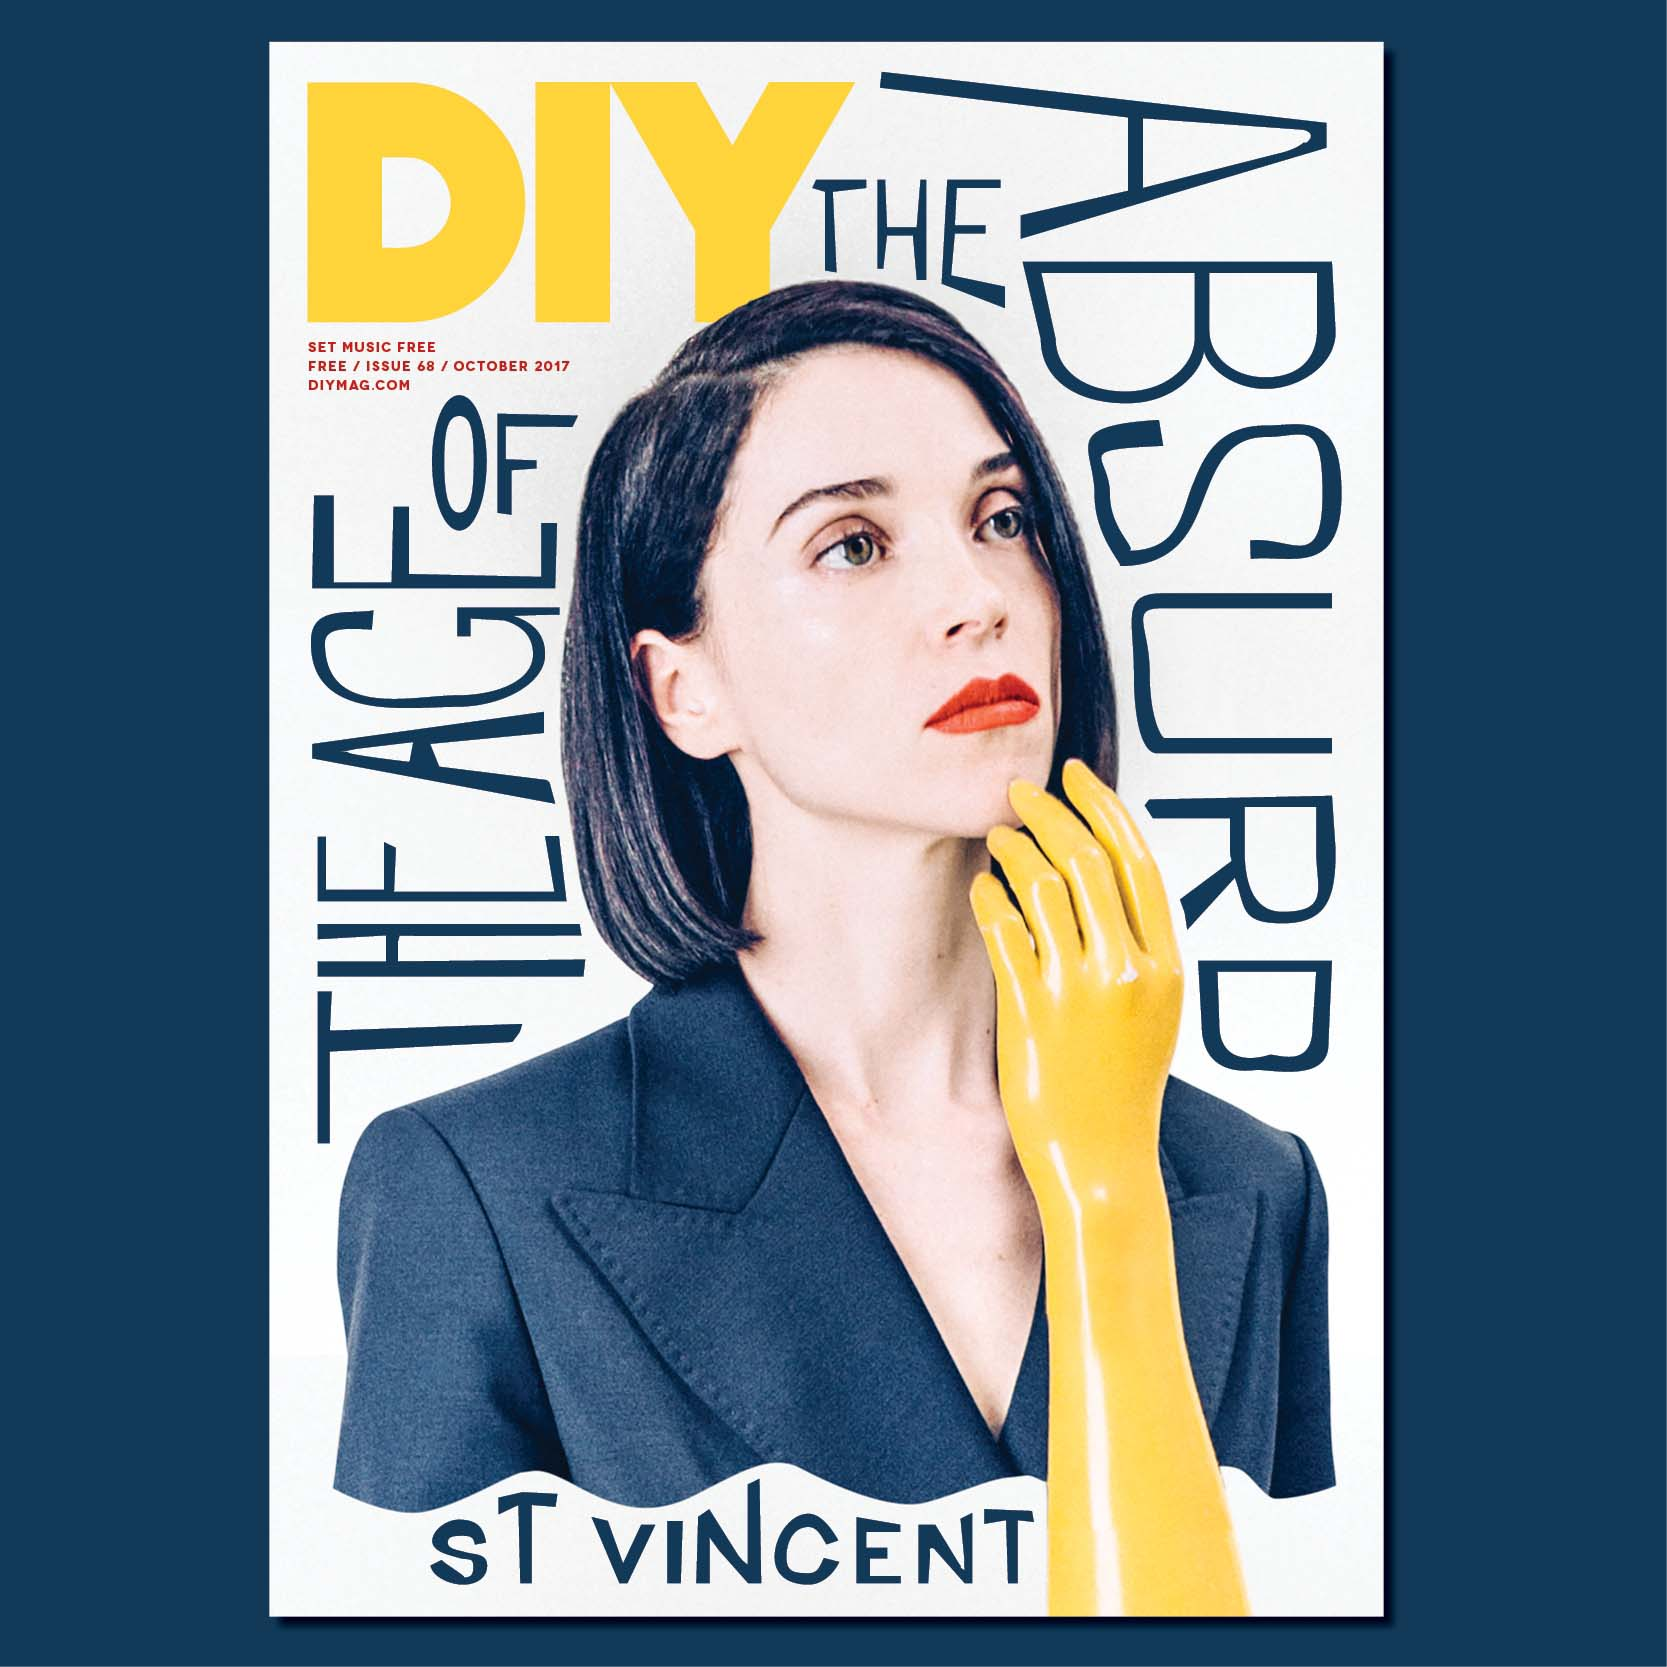 St Vincent is on the cover of the October issue of DIY!